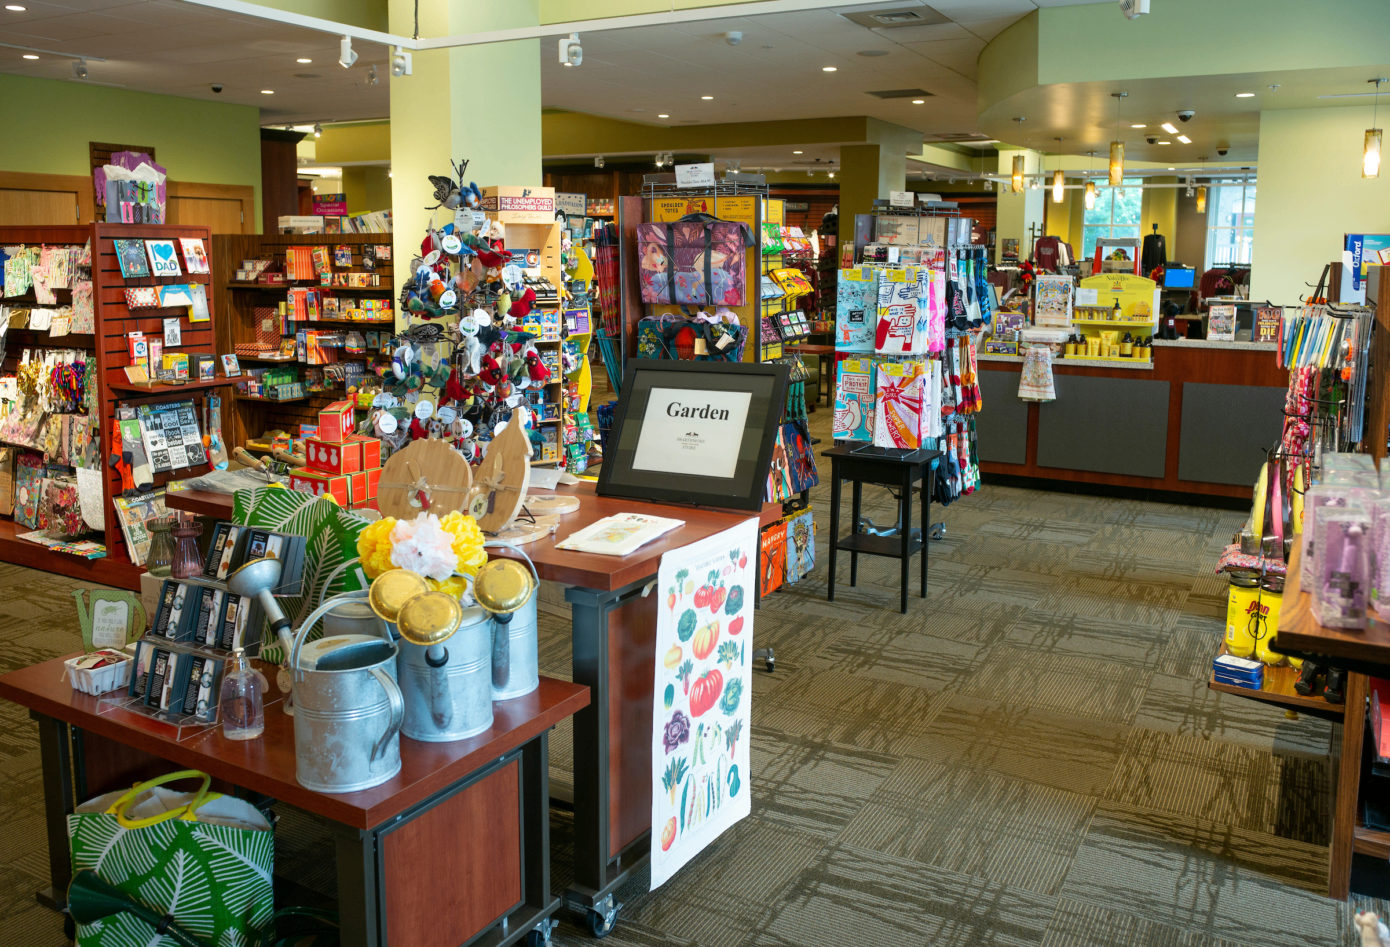 Interior shot of the Swarthmore College bookstore's main merchandise displays